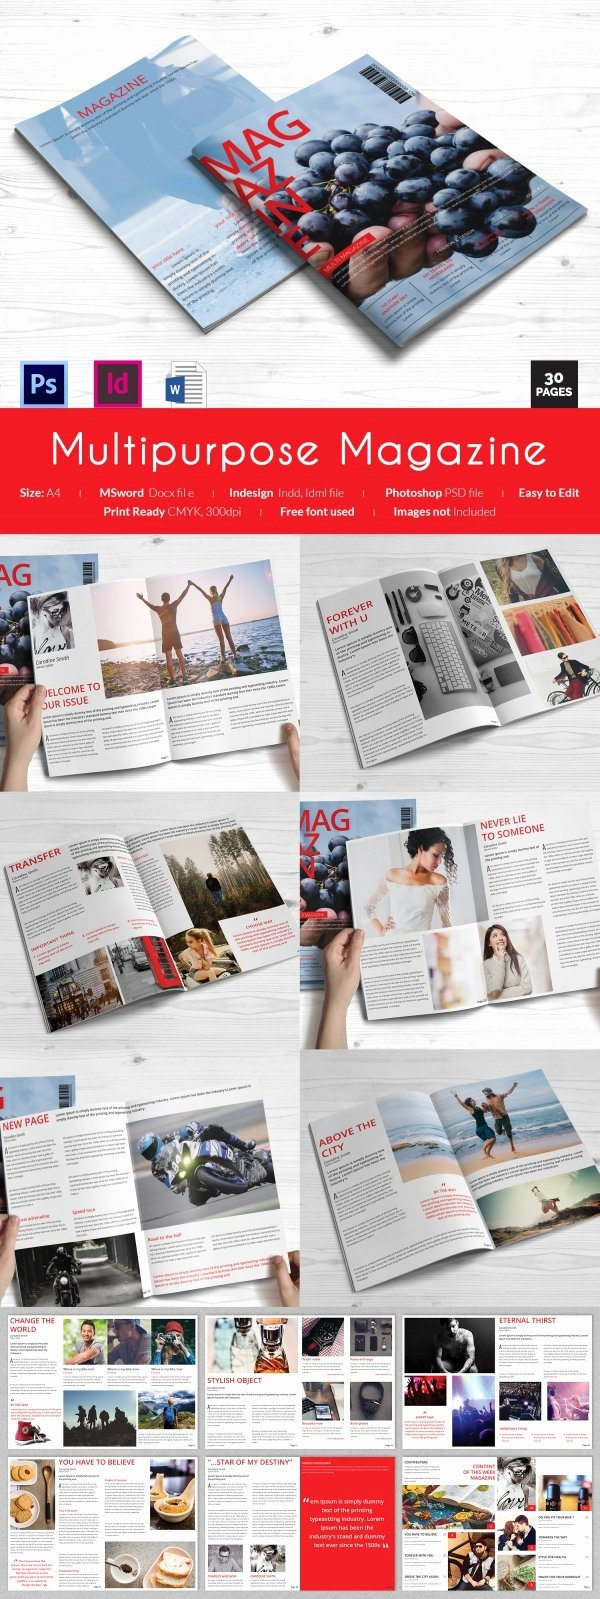 Magazine Templates for Word Elegant 55 Brand New Magazine Templates Free Word Psd Eps Ai